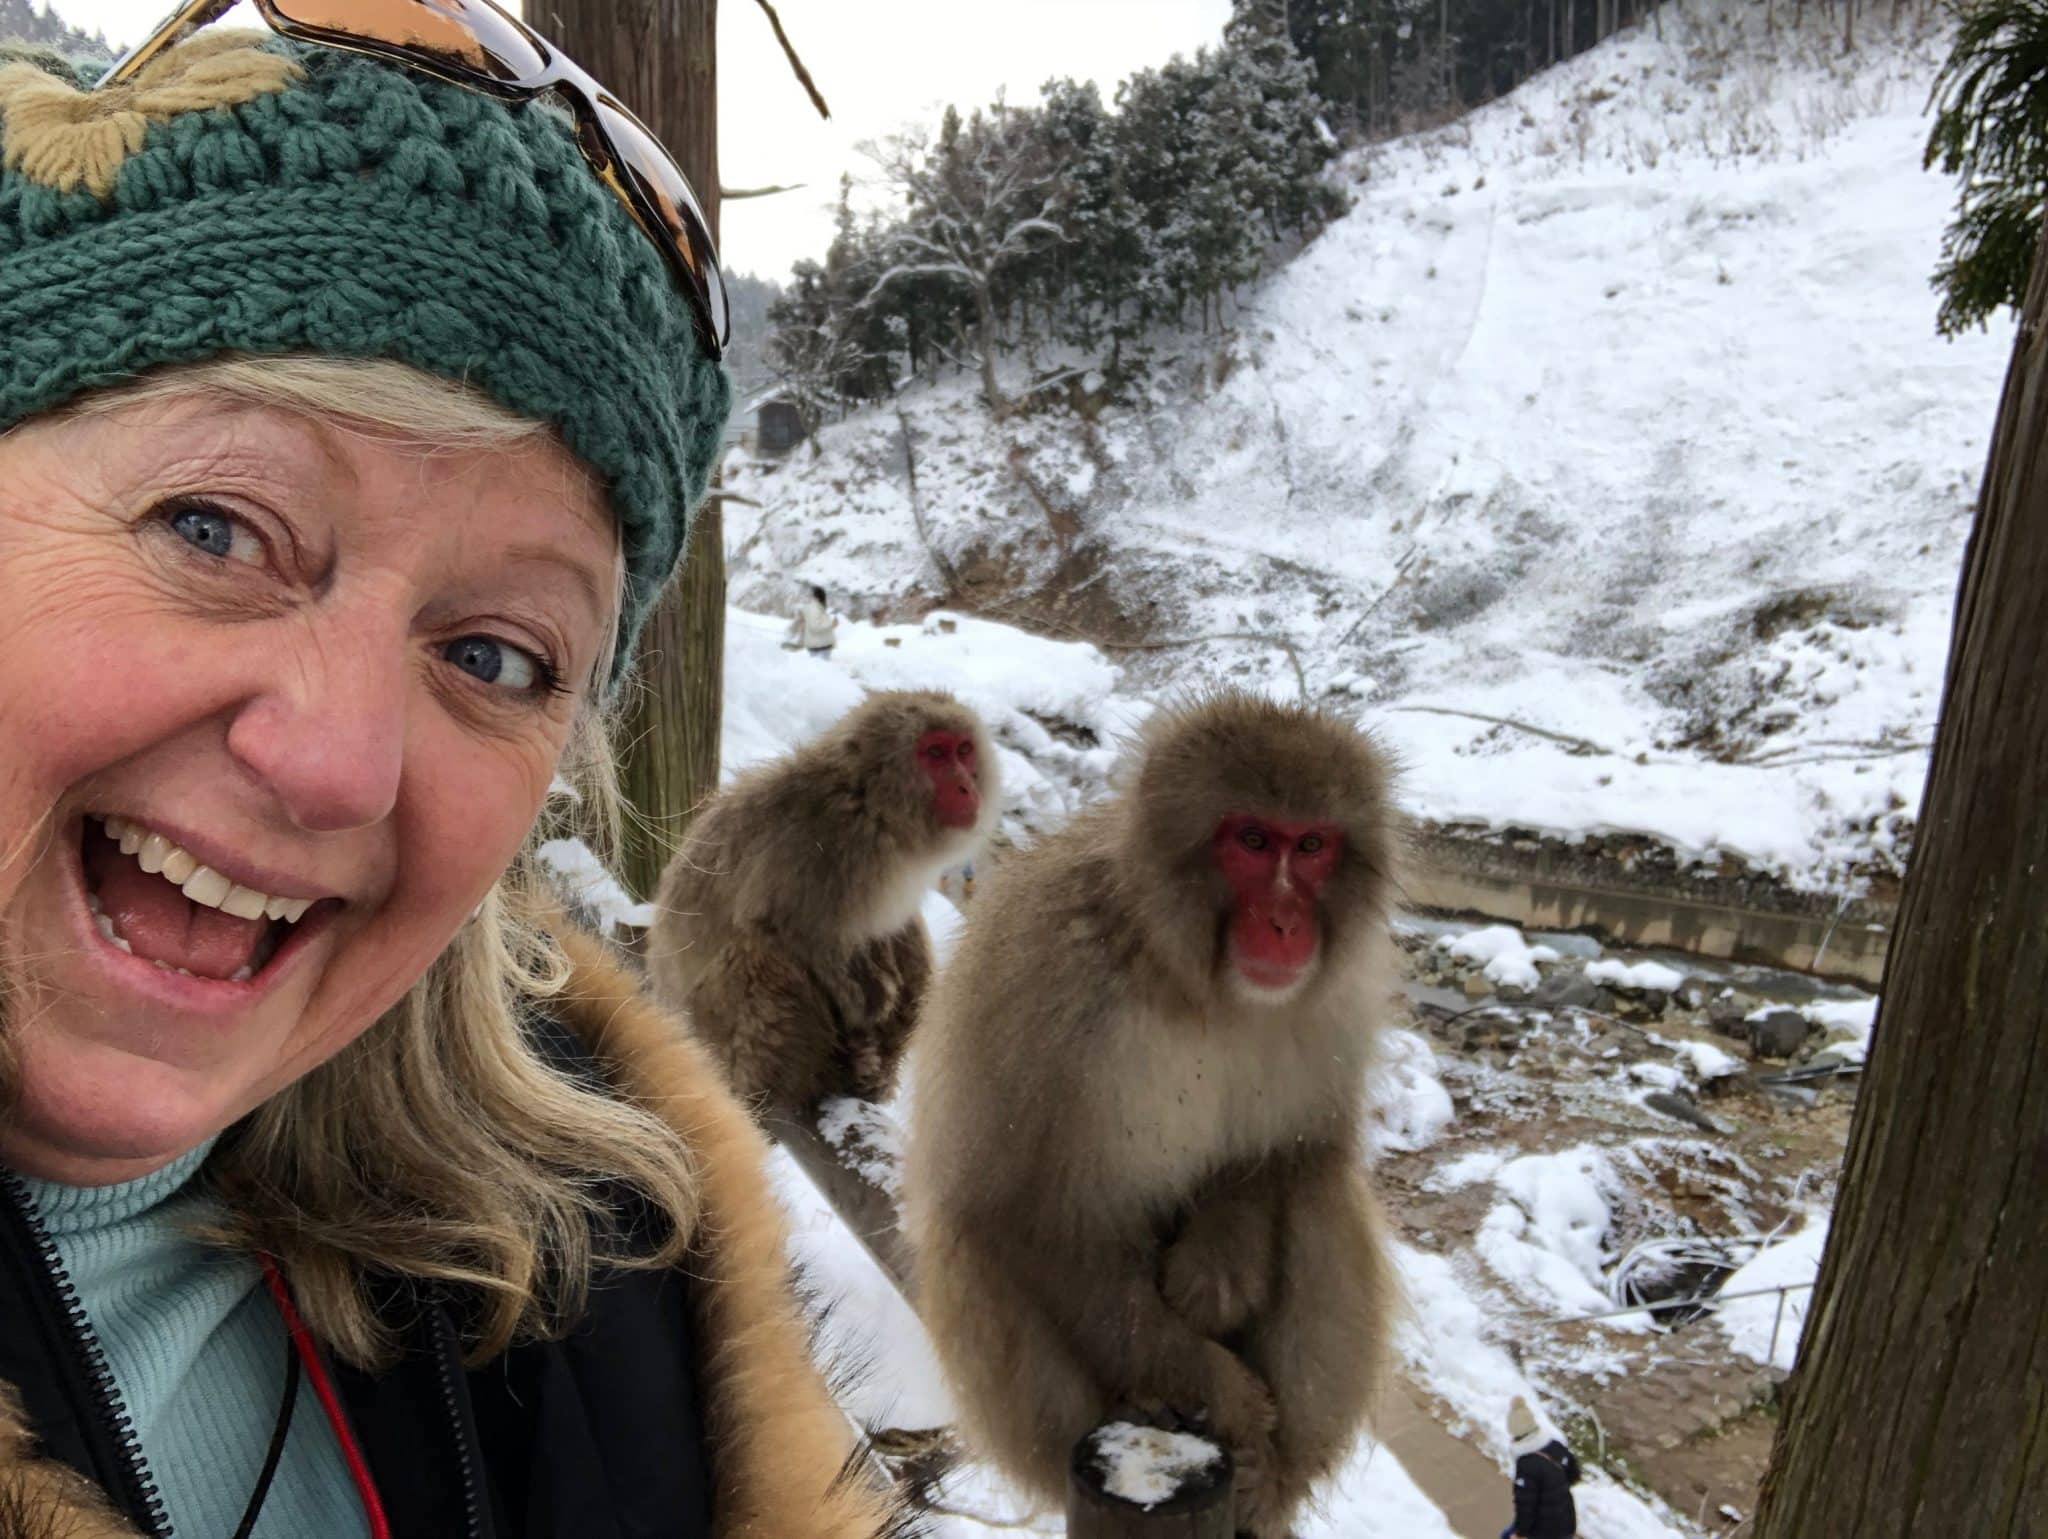 japan_me_surprised_with_snow_monkeys_nagano